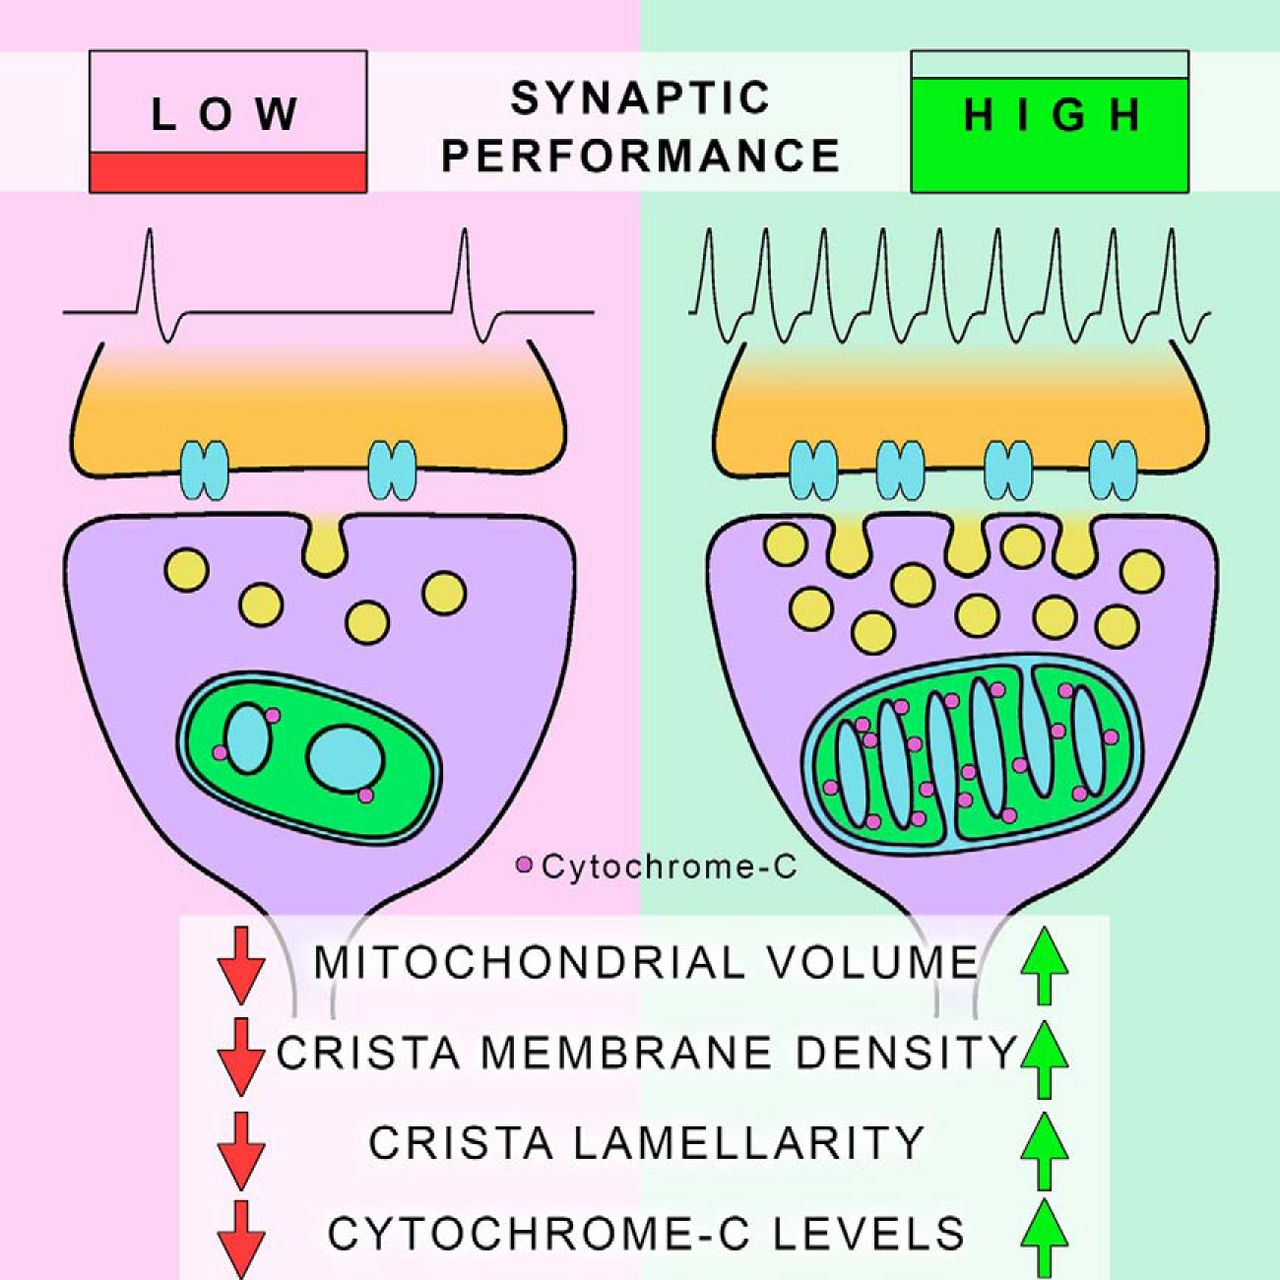 Mitochondrial Ultrastructure Is Coupled To Synaptic Performance At